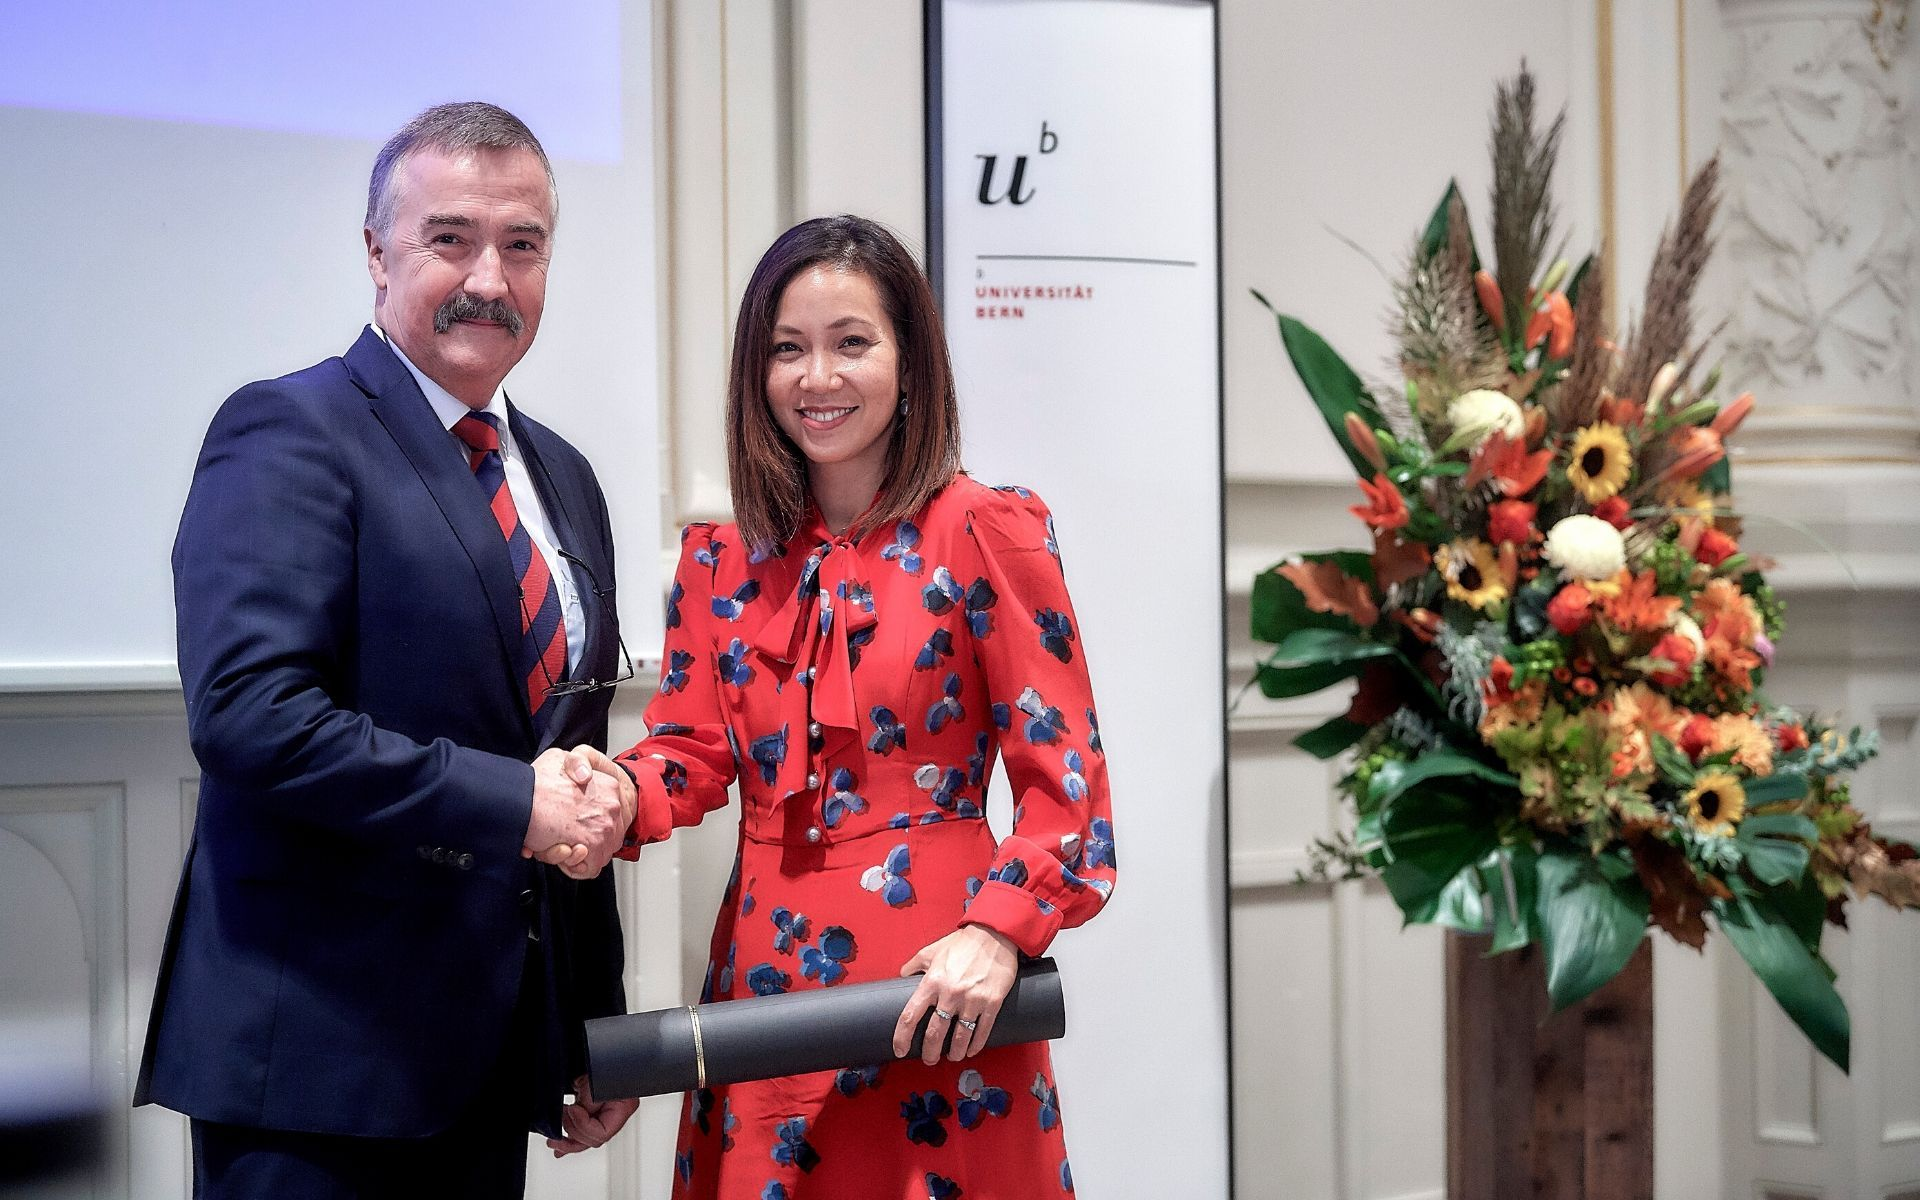 Stephan Rohr, Co-Director of the Institute for Physiology and president of the Dr Josef Steiner Cancer Foundation's board presenting Dr Serena Nik-Zainal with her award